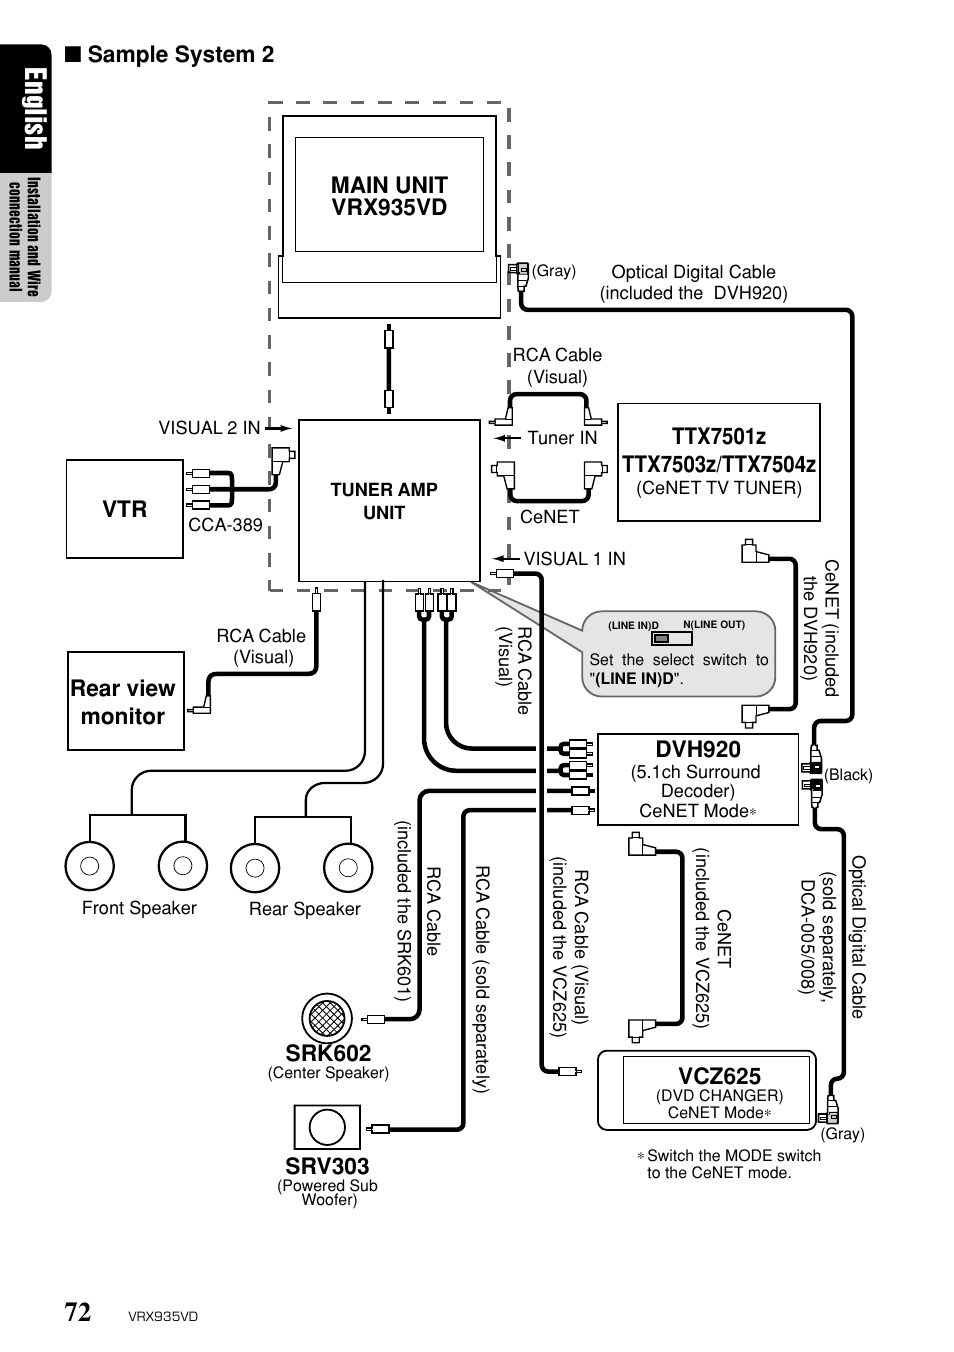 Clarion Vrx935vd Wiring Diagram Pro Audio Diagrams Mifinder Co Parts English Sample System 2